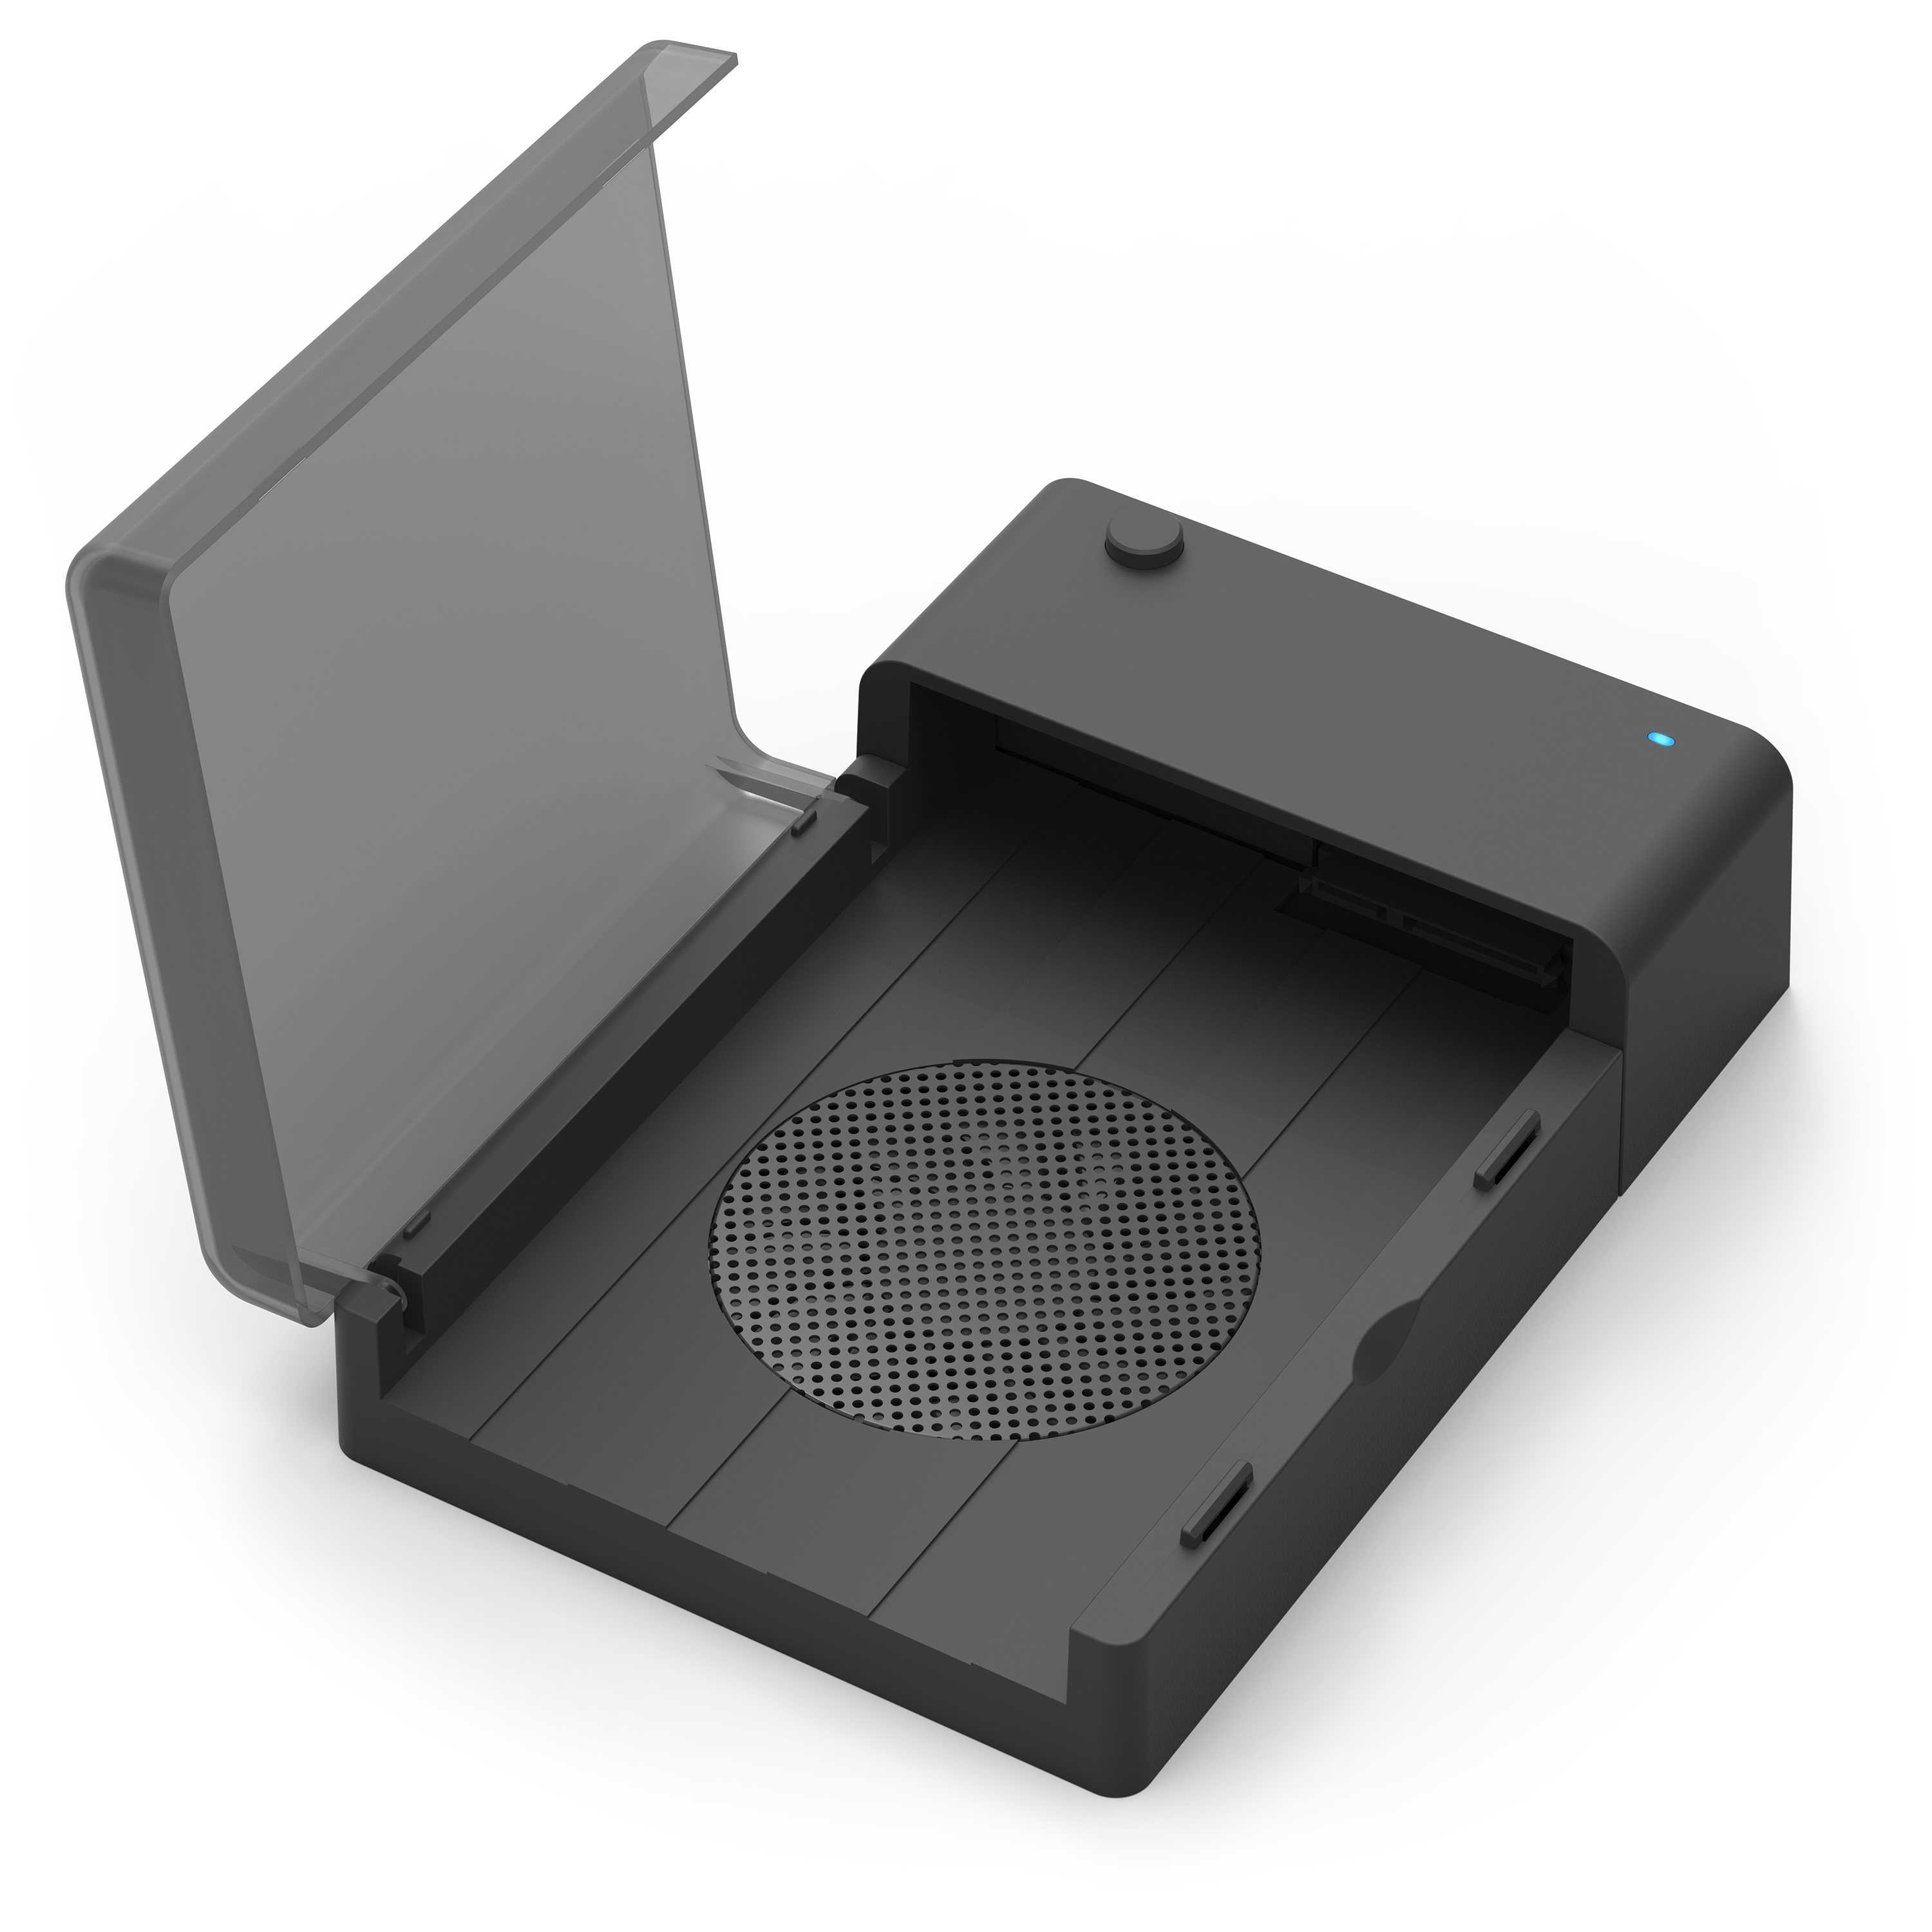 Sabrent USB 3.0 to SATA External Hard Drive Lay-Flat Docking Station with Built-in Cooling Fan for 2.5 or 3.5in HDD, SSD